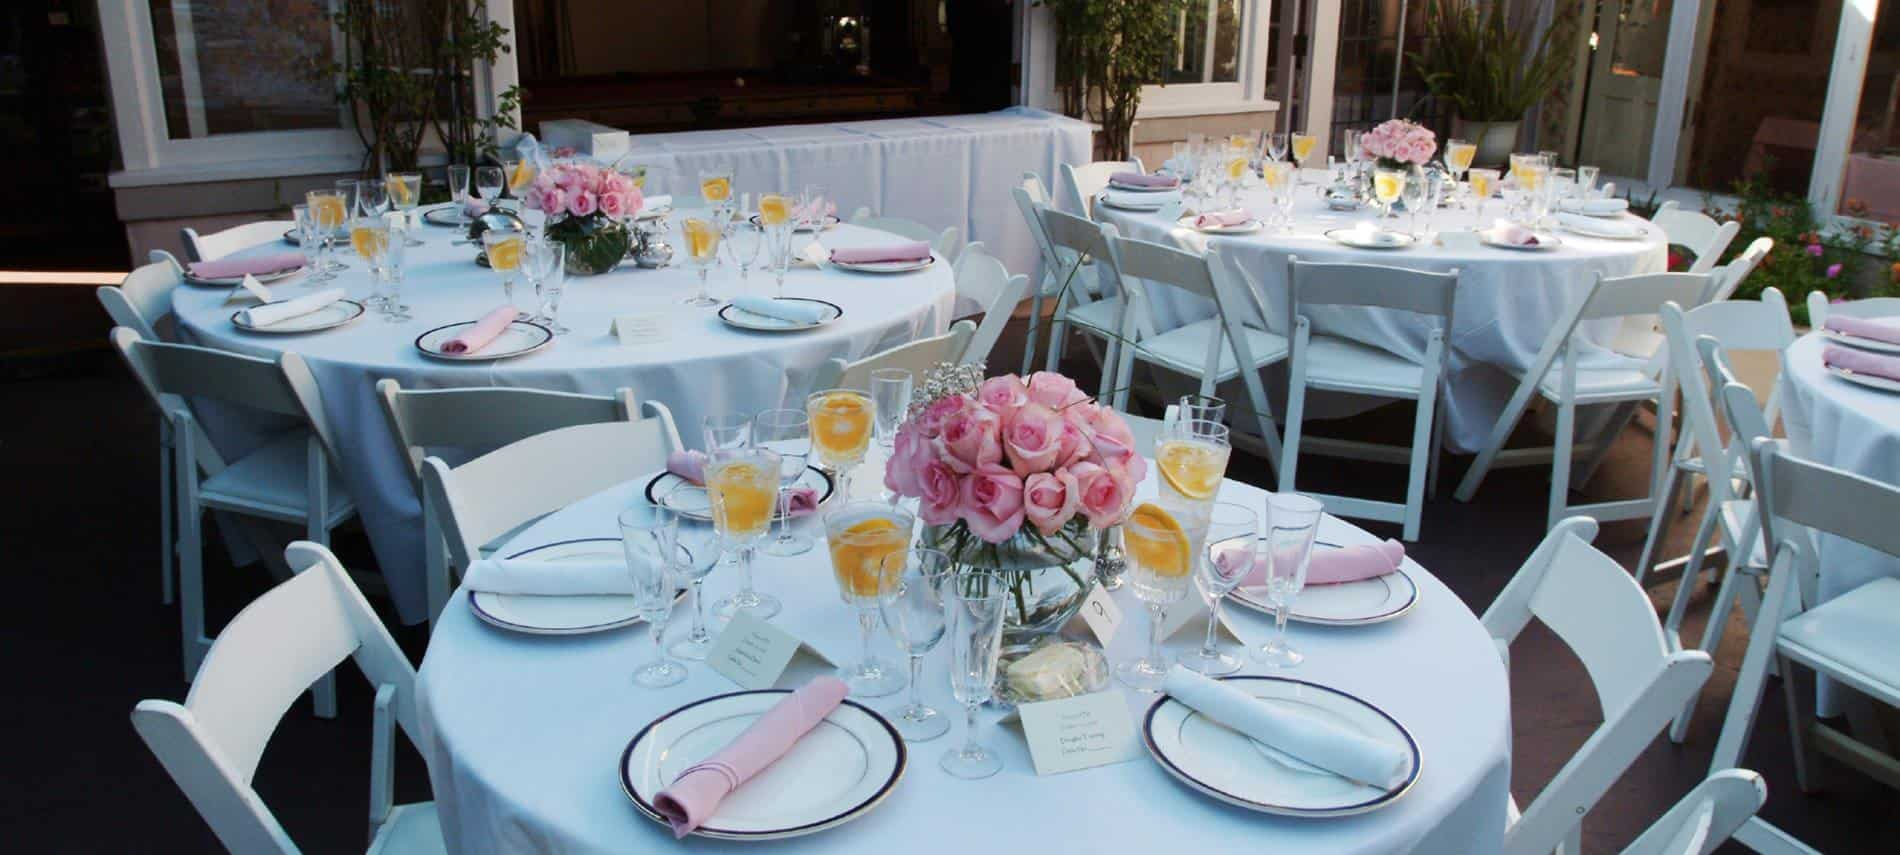 Round white tables and chairs, topped with white cloths and plates, wine glasses, pink napkins and vases of pink roses